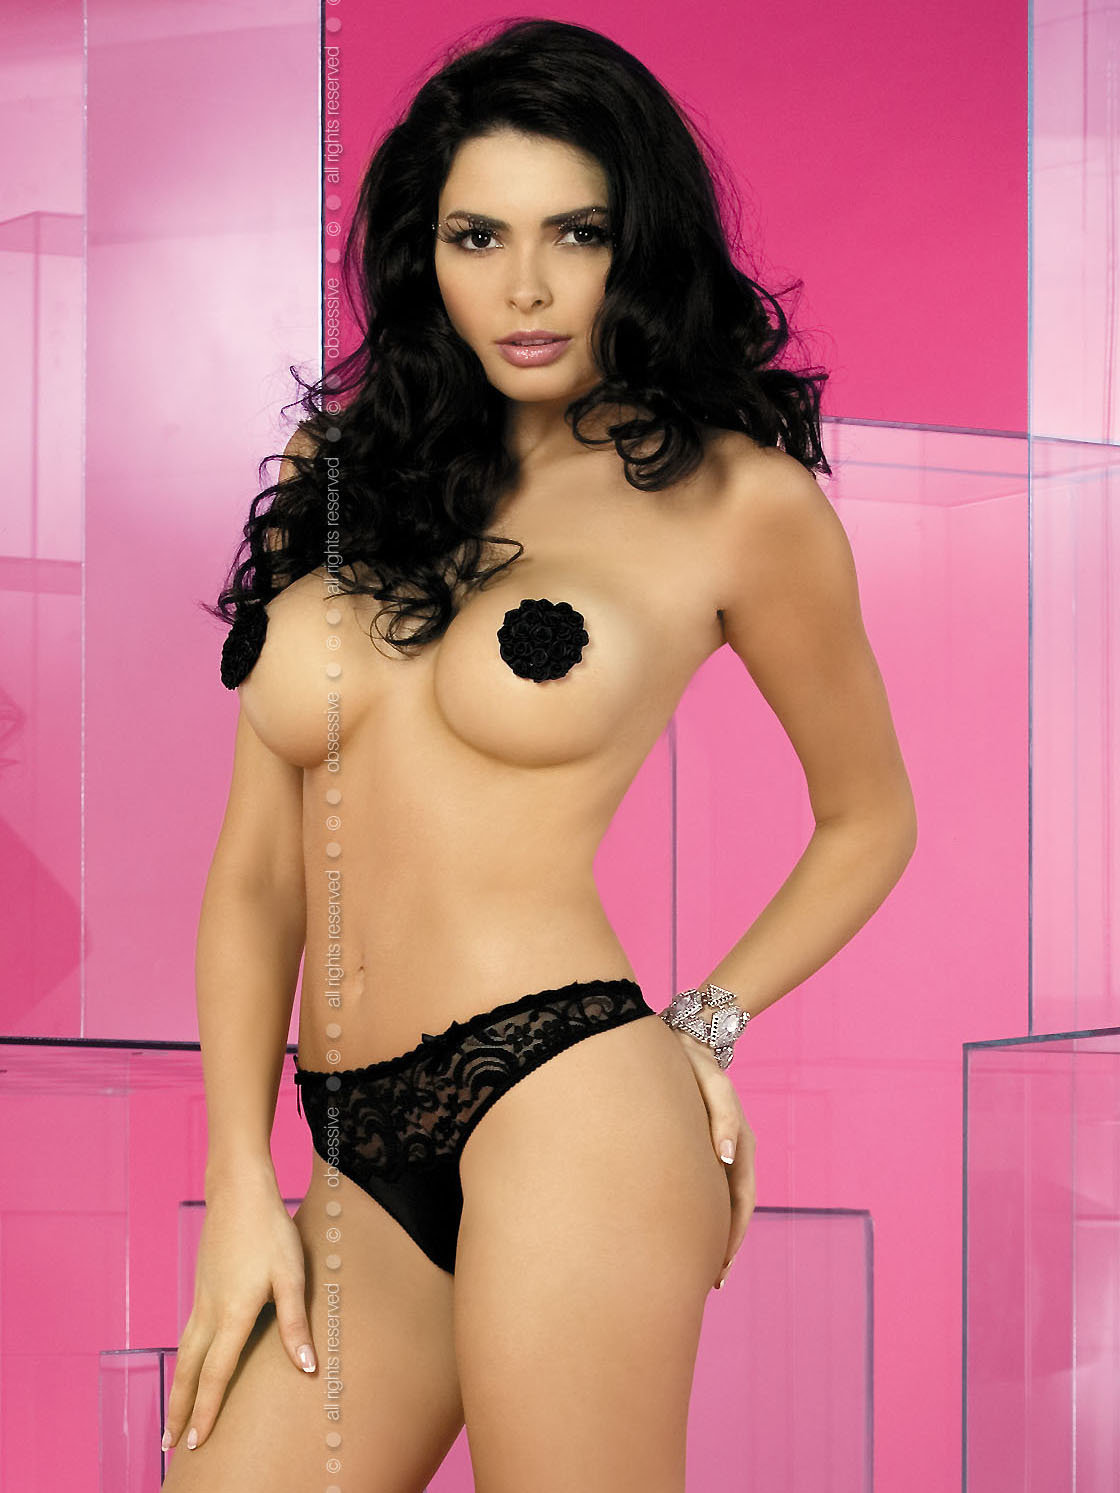 Lucky nipple covers Negru